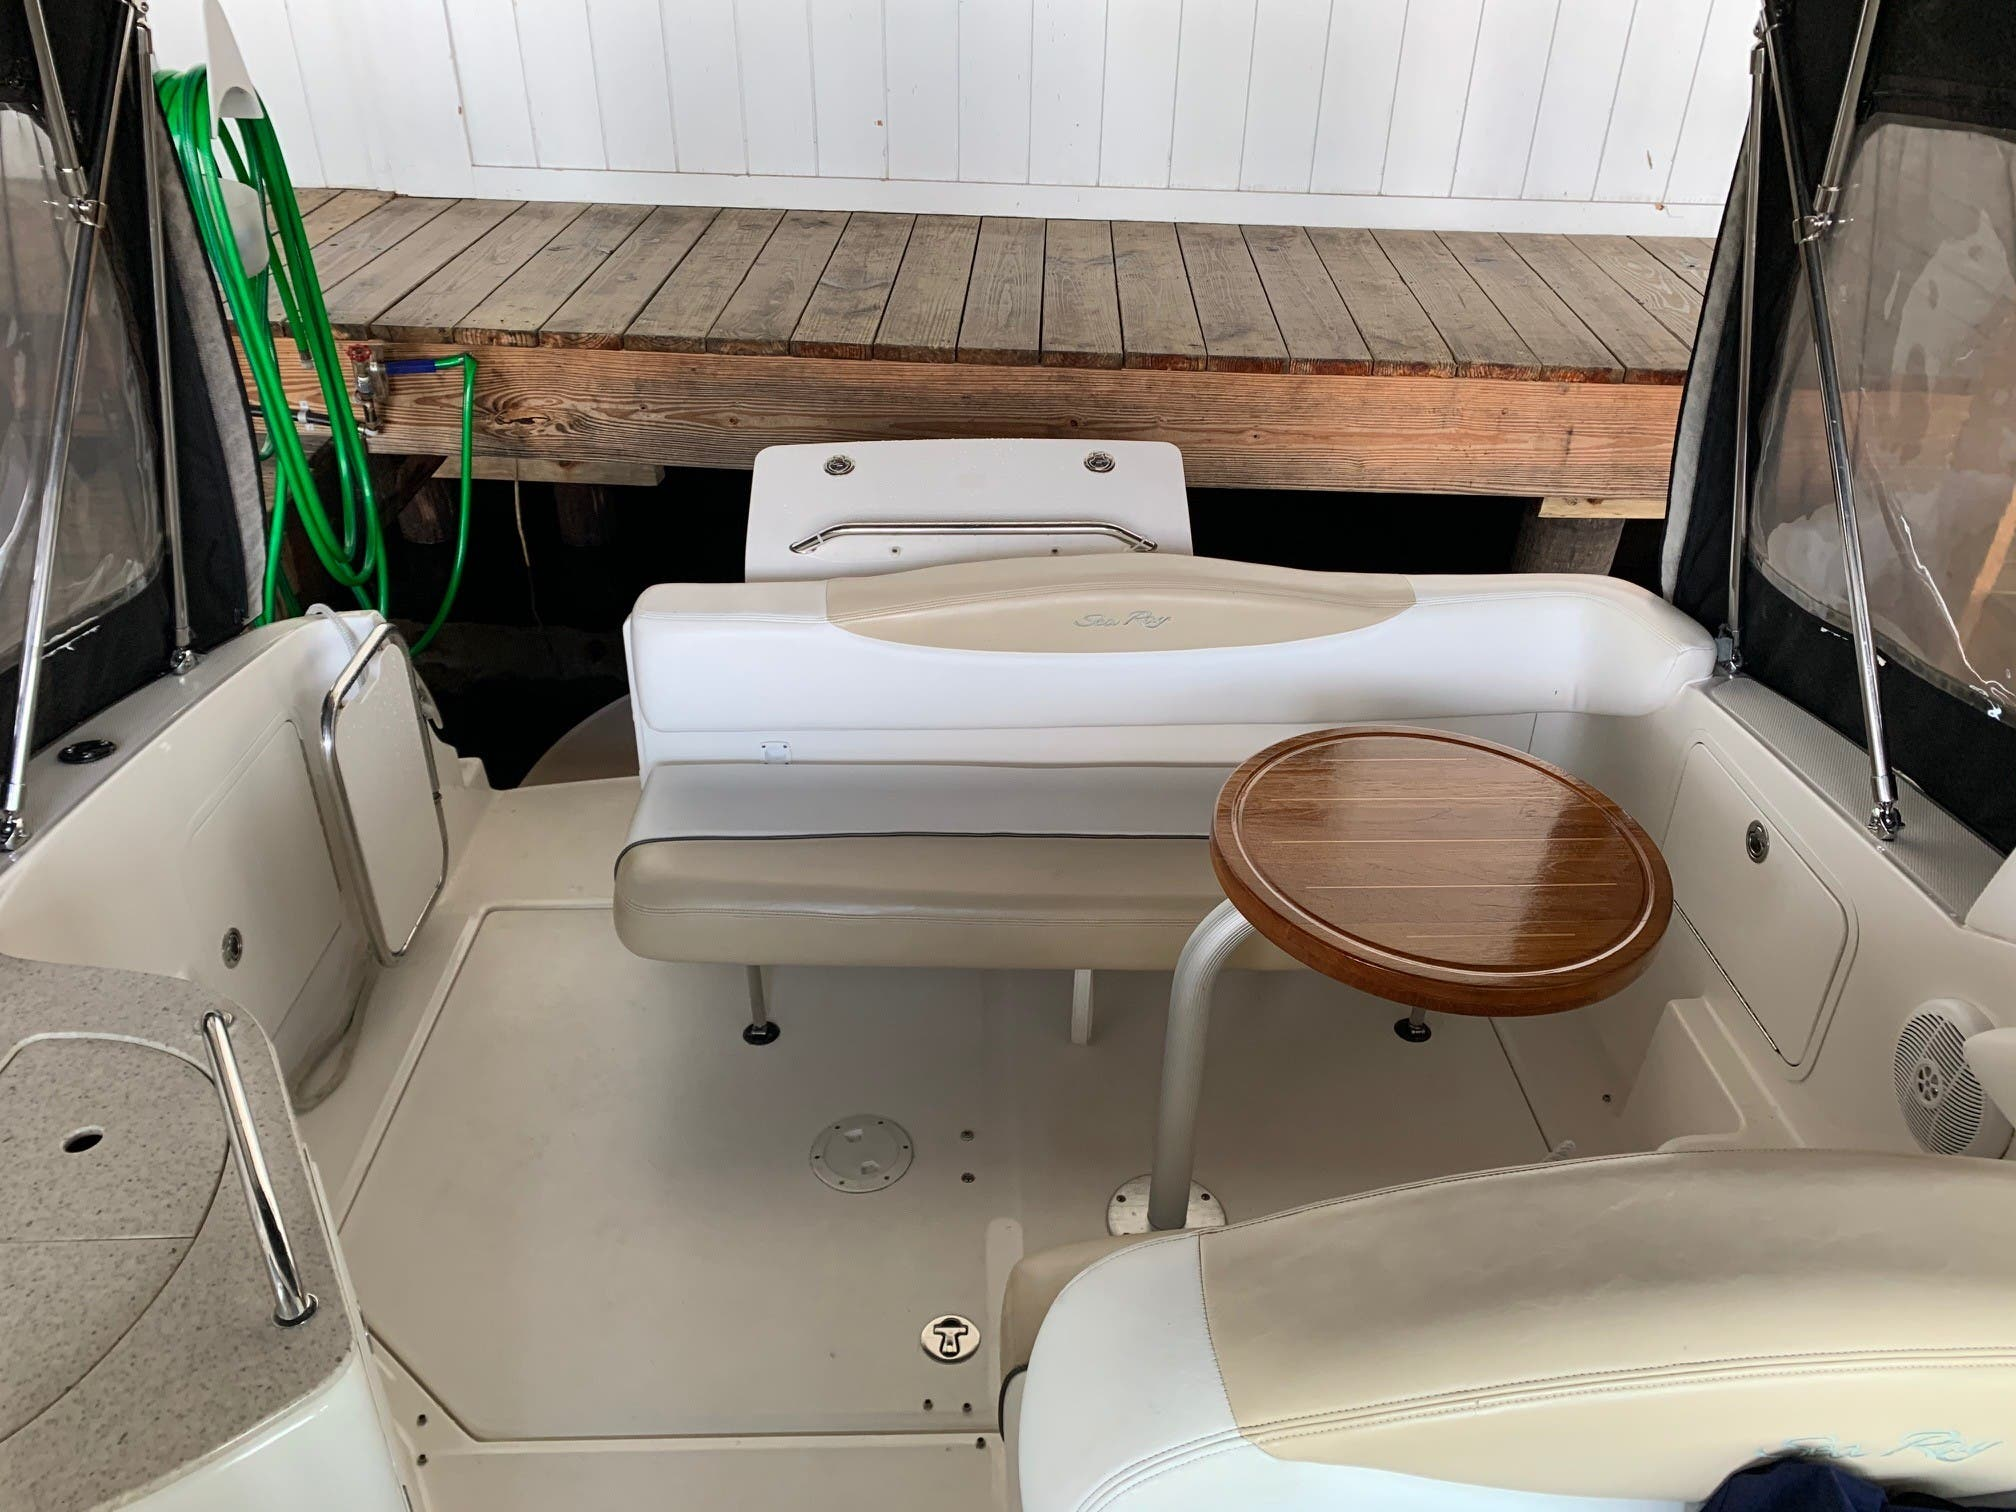 2008 Sea Ray boat for sale, model of the boat is 280 Sundancer & Image # 8 of 14